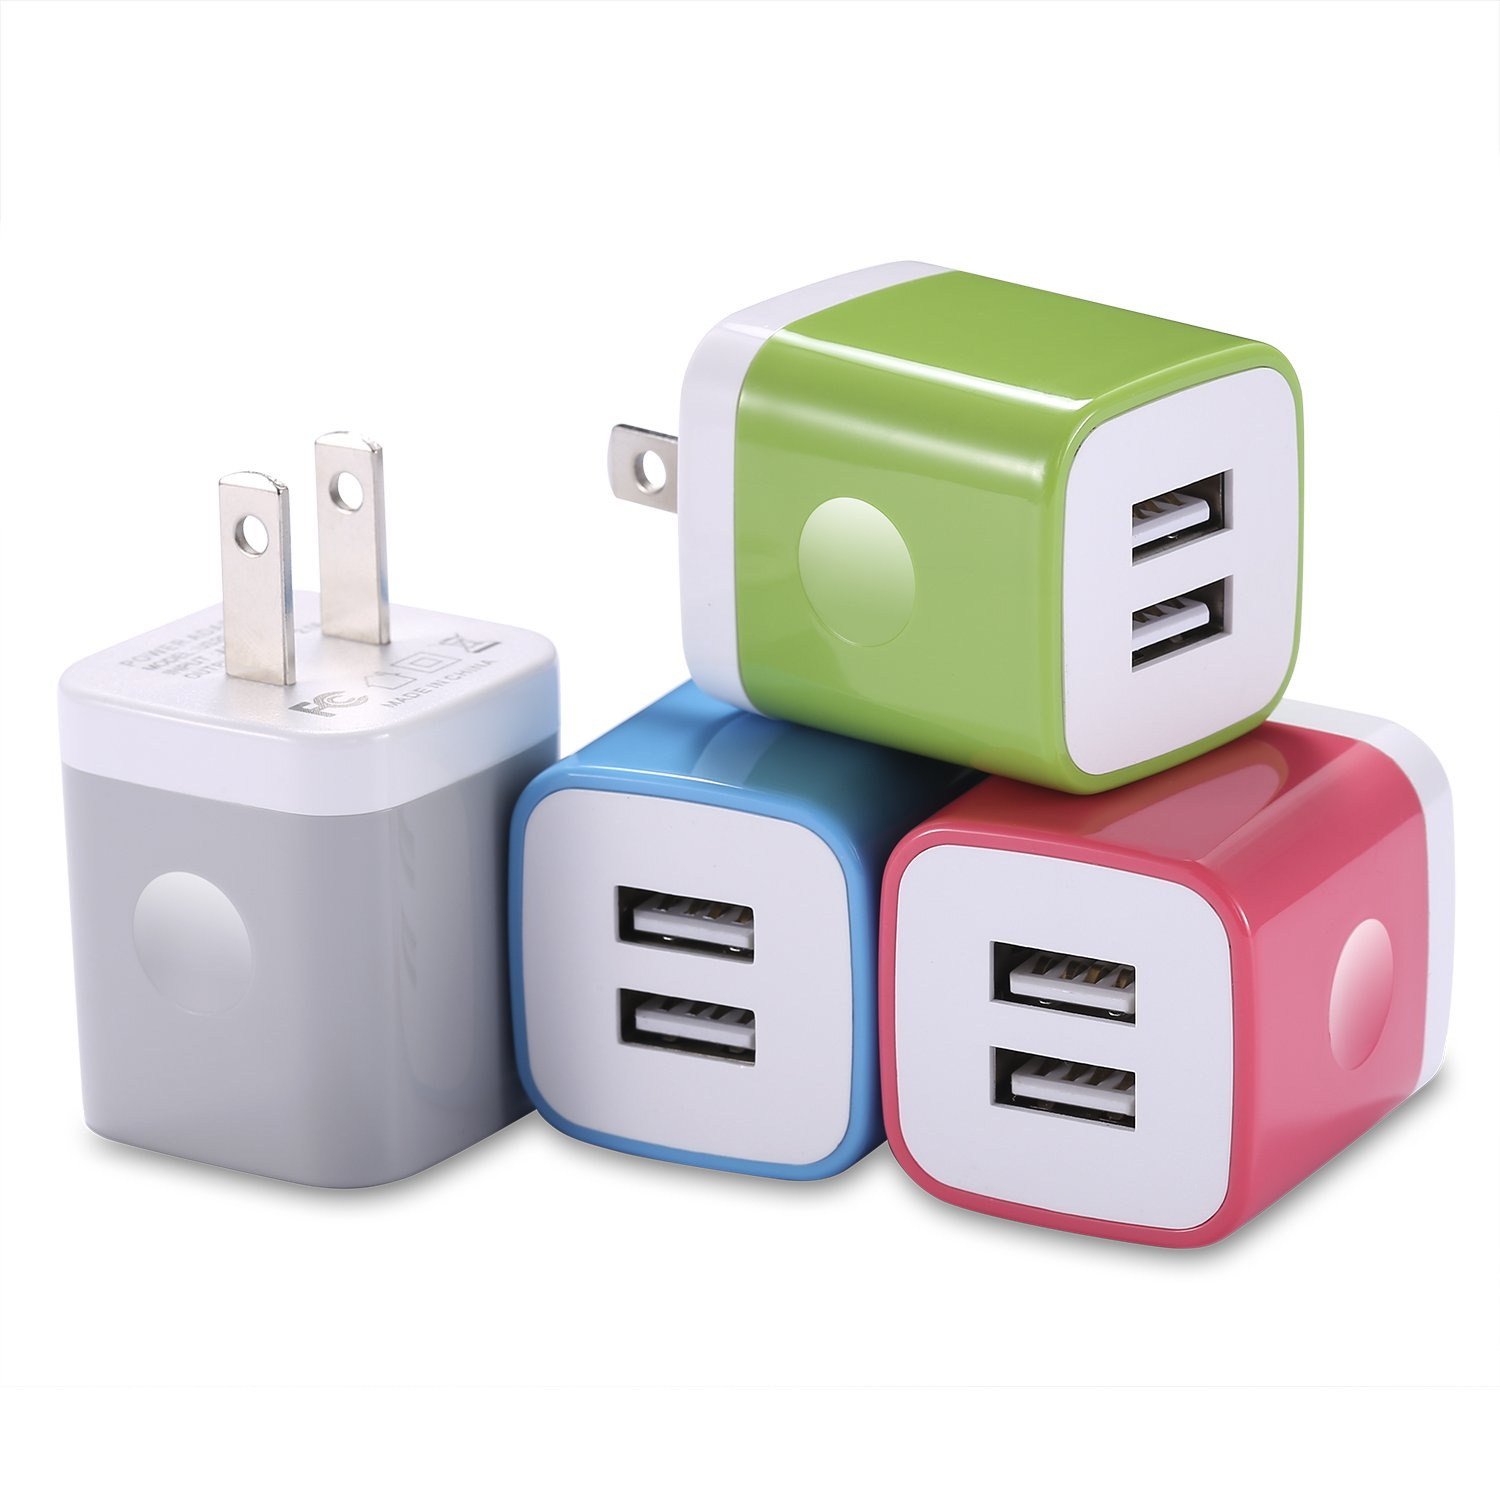 LOOGGO USB Wall Charger, 10.5-Watt 2-Port USB Charger Wall Plug Power Adapter Charging Block Cube Compatible with iPhone X 8 7 6 Plus 5S, iPad, iPod, Samsung, LG, HTC, Kindle, Android Phones -4Pack